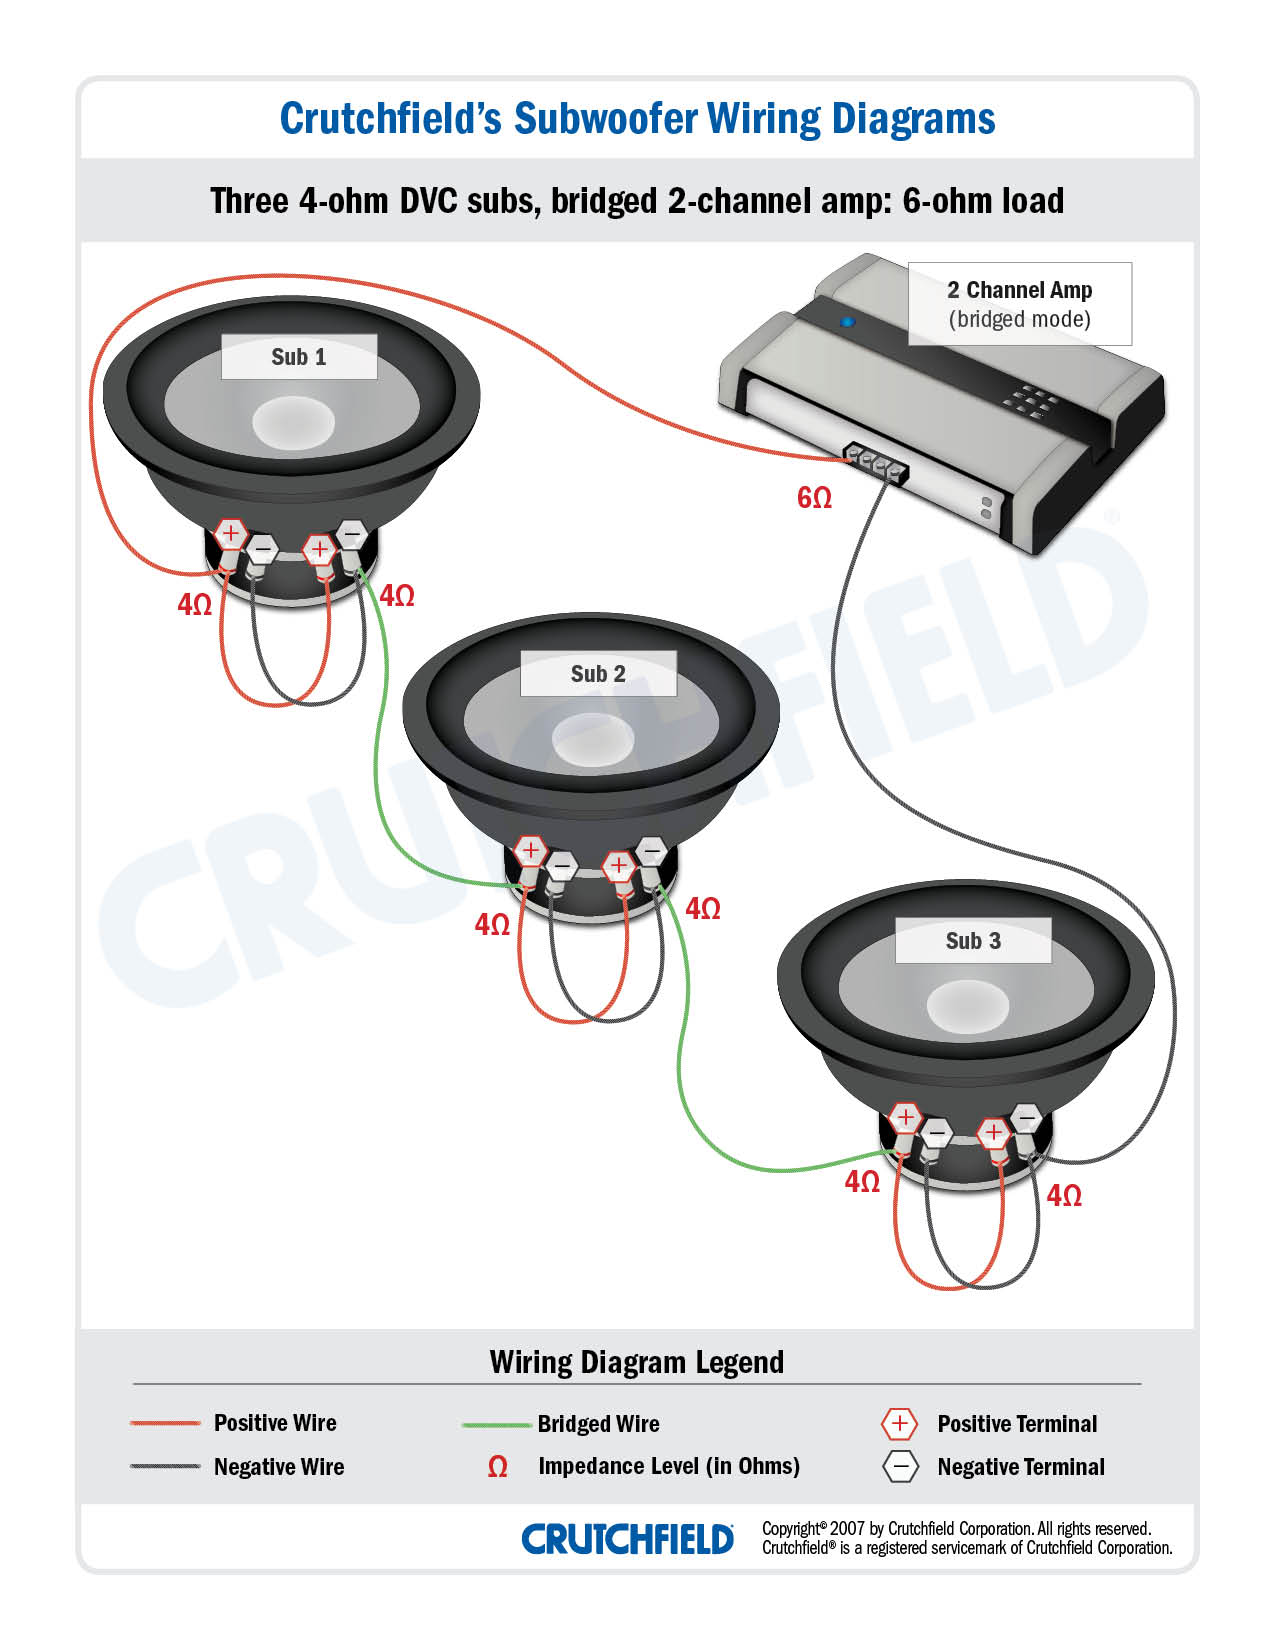 3 DVC 4 ohm 2 ch wiring subwoofers what's all this about ohms? 1 ohm subwoofer wiring diagram at bayanpartner.co